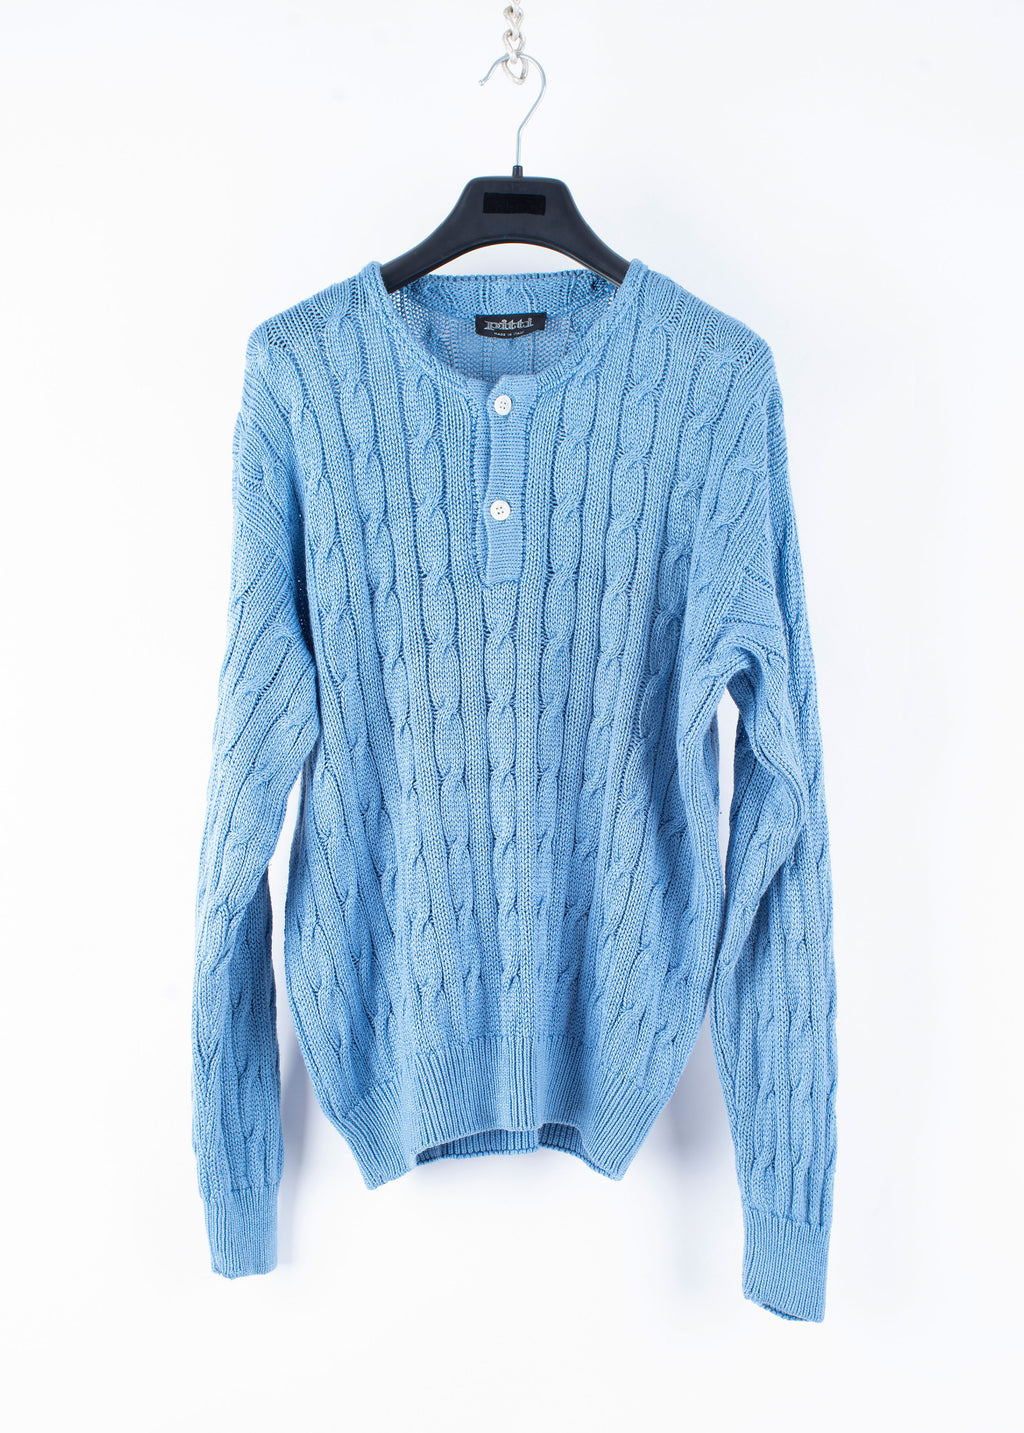 Vintage 100% Silk Men's Light Blue Cable Knit Jumper, L